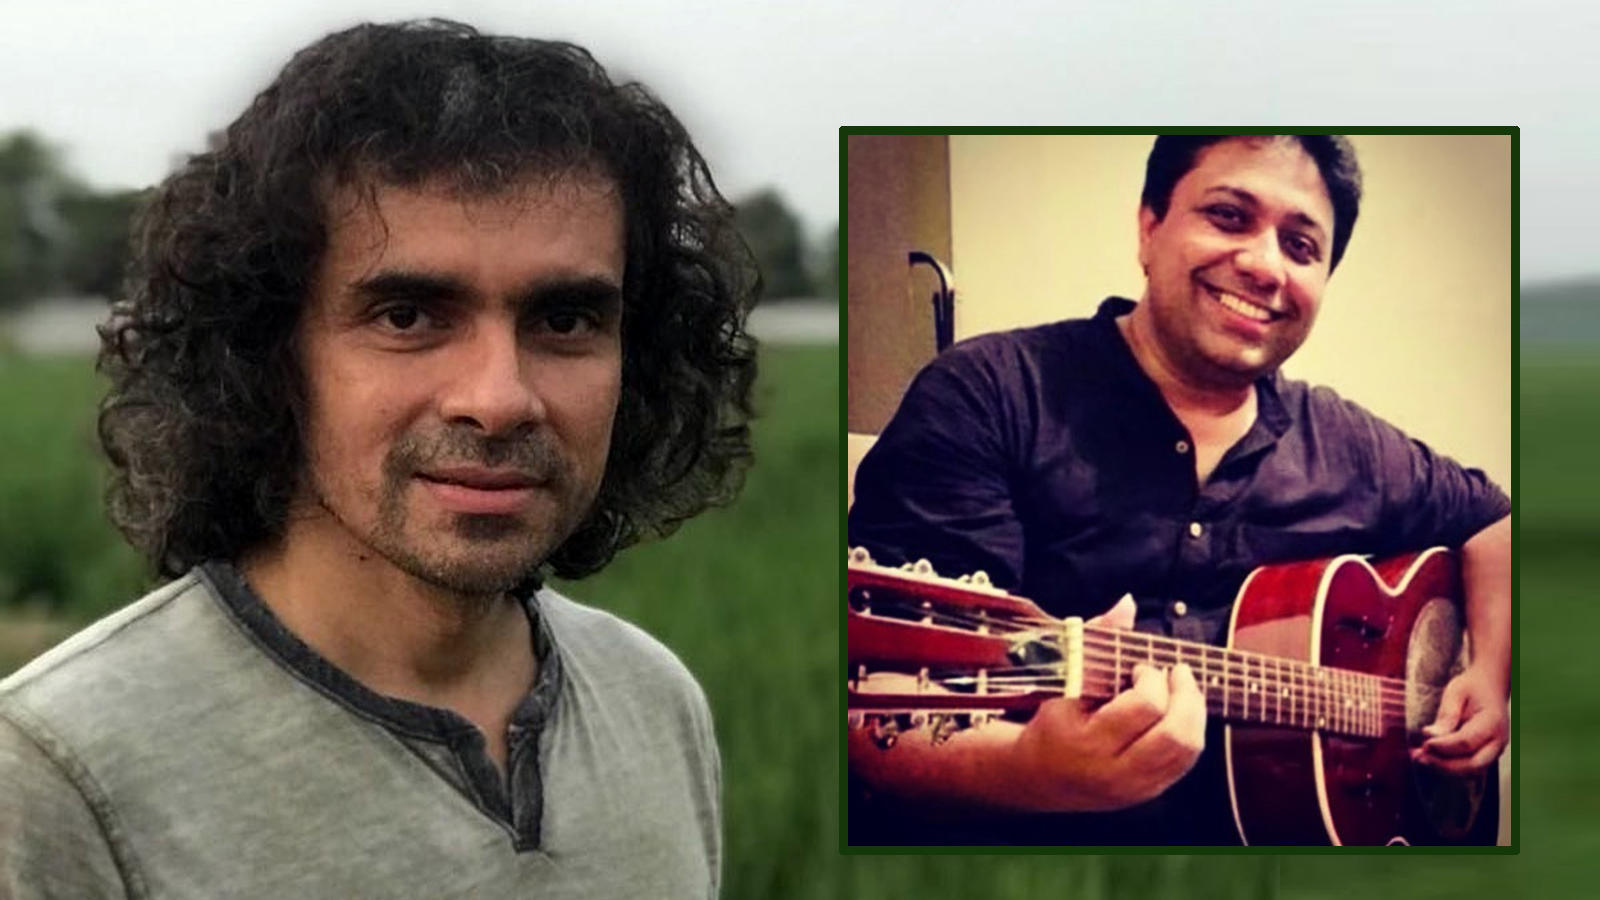 imtiaz-ali-urges-fans-to-raise-funds-for-a-friend-suffering-from-covid-induced-brain-stroke